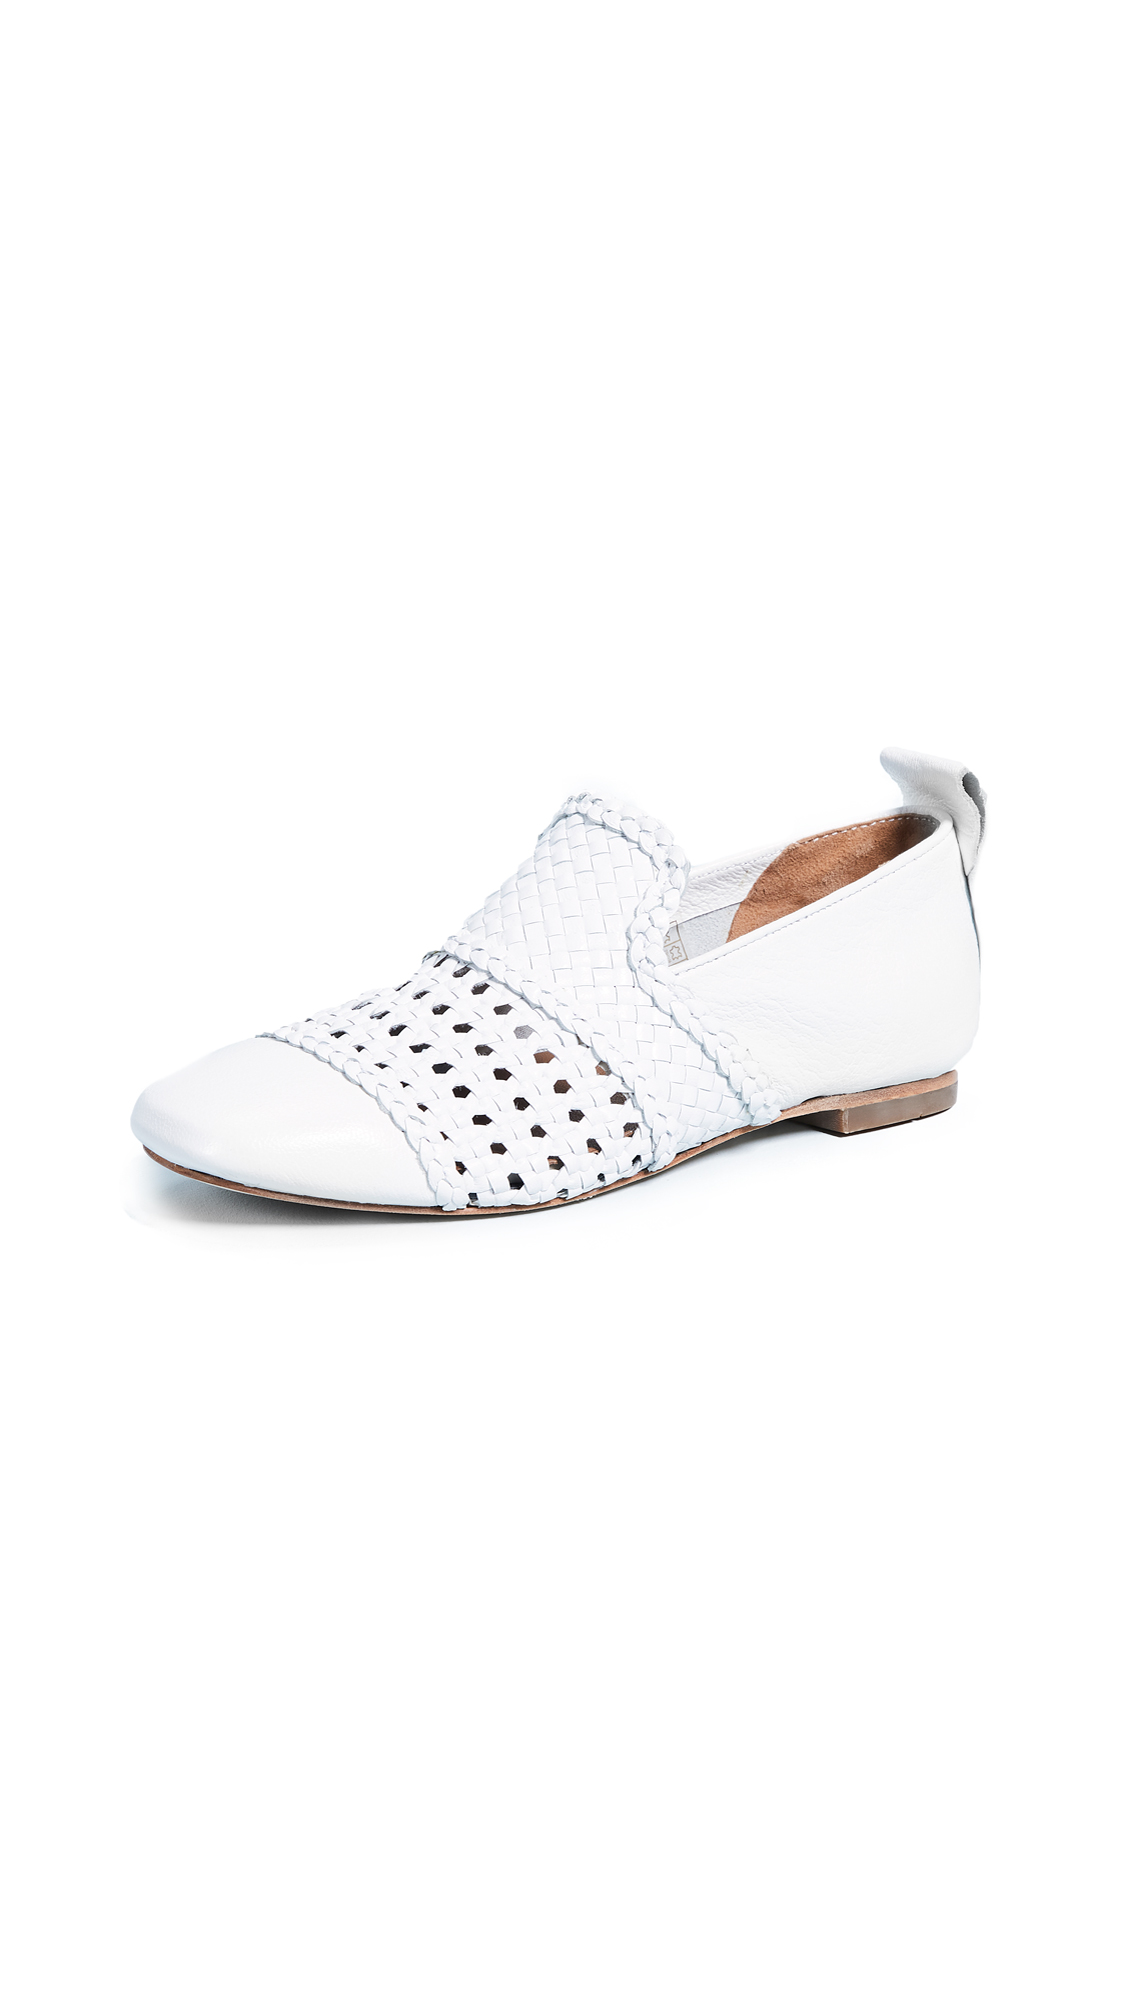 Hudson London Chilli Loafers - White